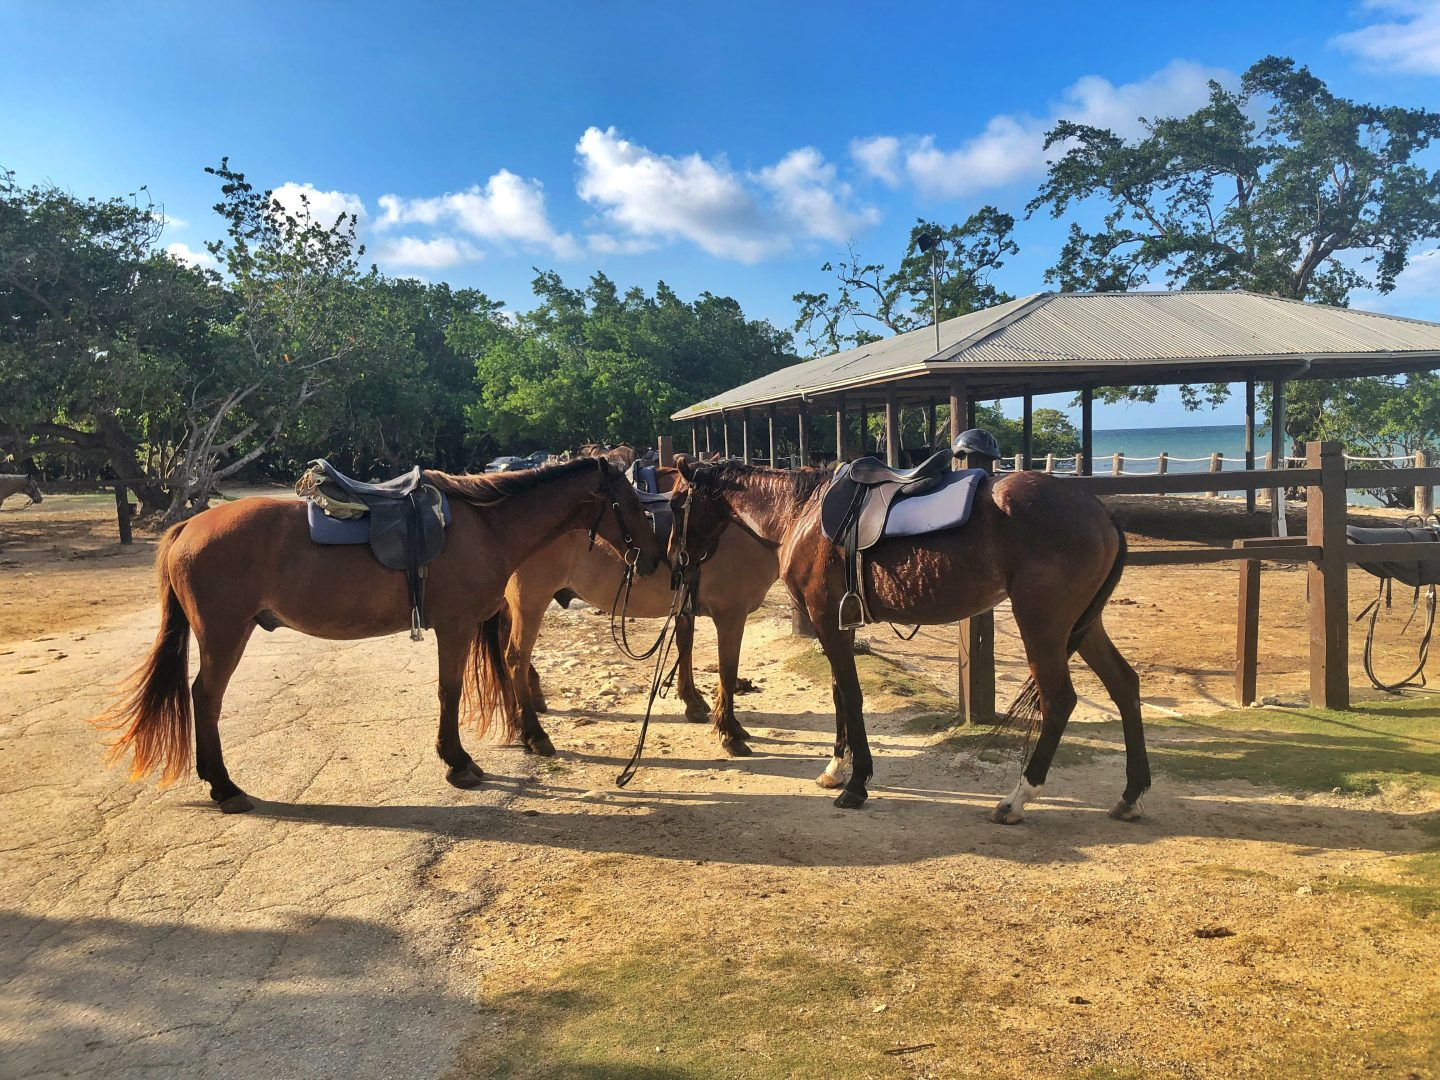 Horses on Chukka Caribbean ranch.